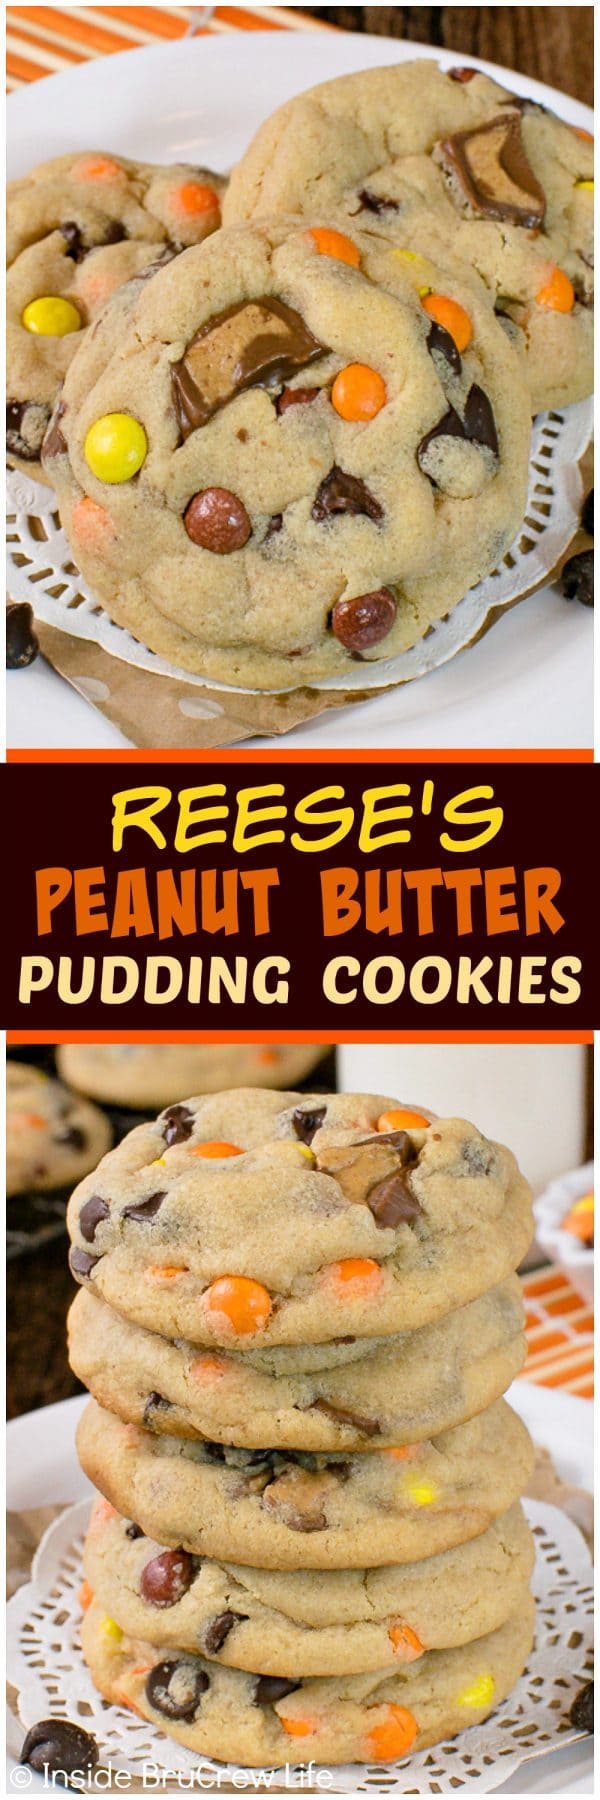 Reese's Peanut Butter Pudding Cookies - this soft and chewy peanut butter cookie recipe is loaded with chocolate and candy! Great dessert to fill the cookie jar with! #cookies #peanutbutter #puddingcookies #reesespeanutbuttercups #cookiejar #recipe #chocolatechipcookies #bestpuddingcookies